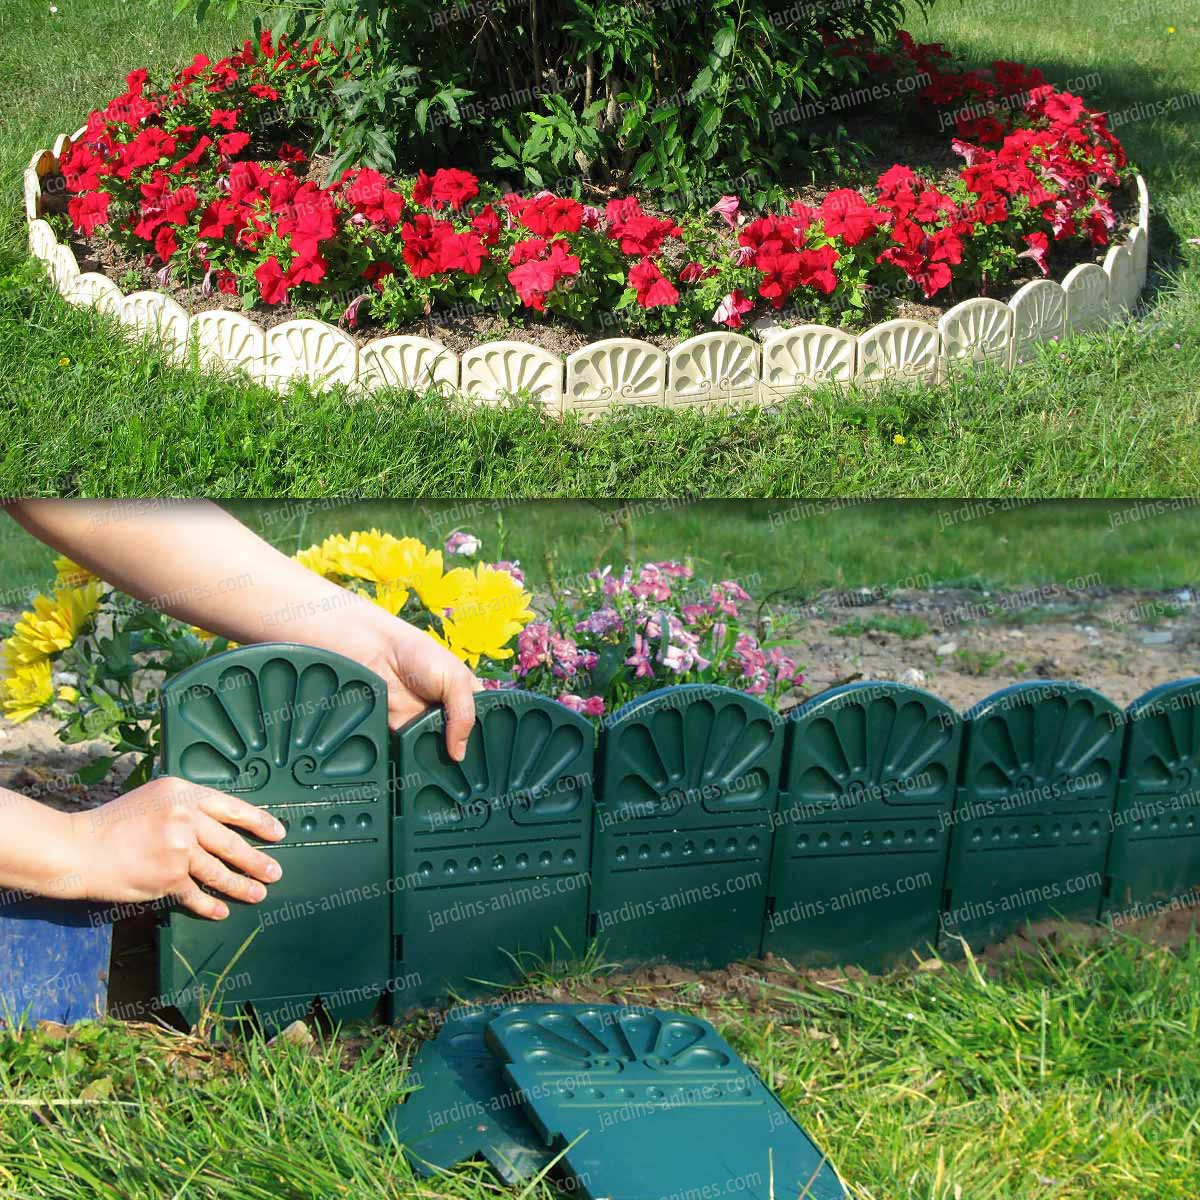 Bordures d coratives de jardin en plastique for Bordures de jardin